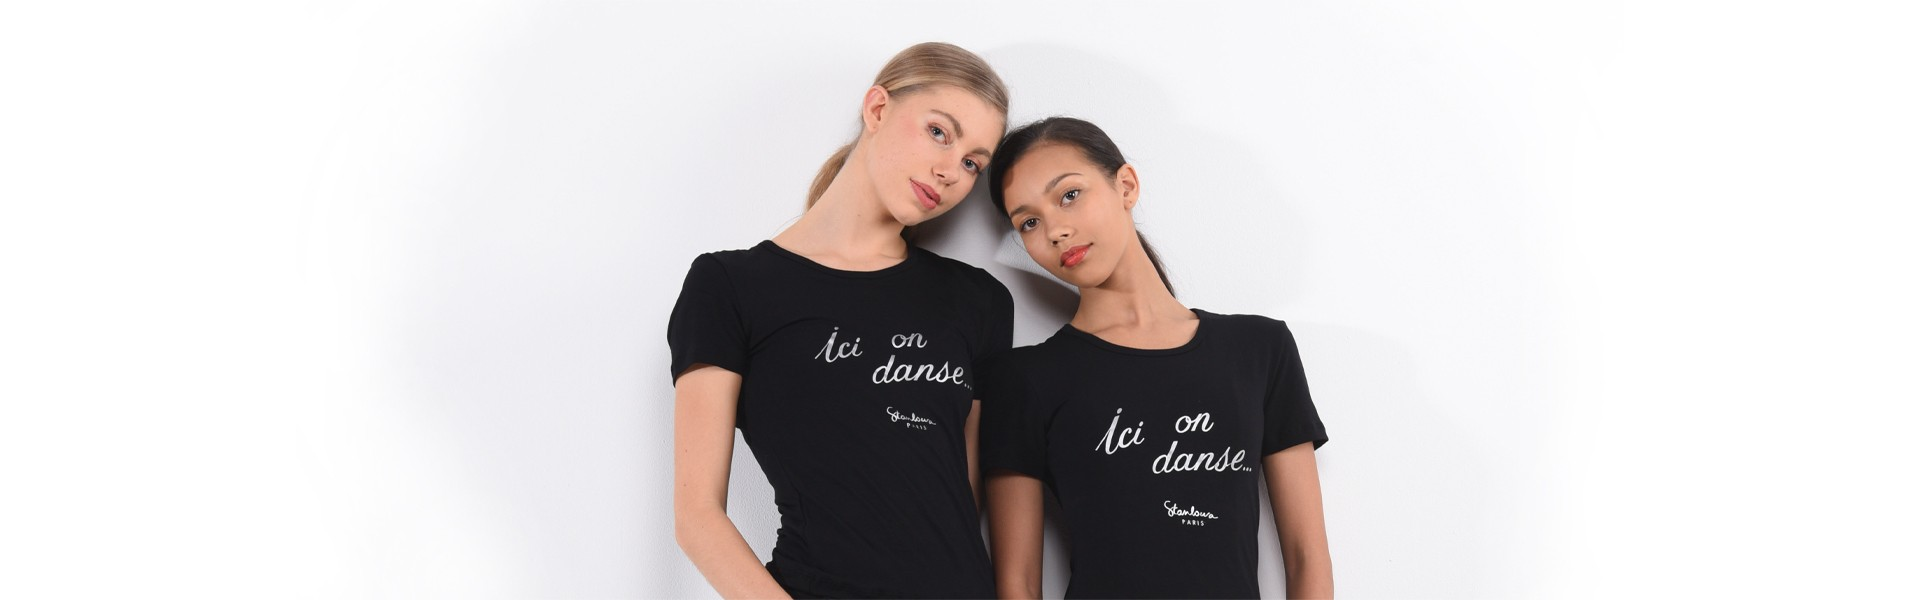 Stanlowa ici on danse